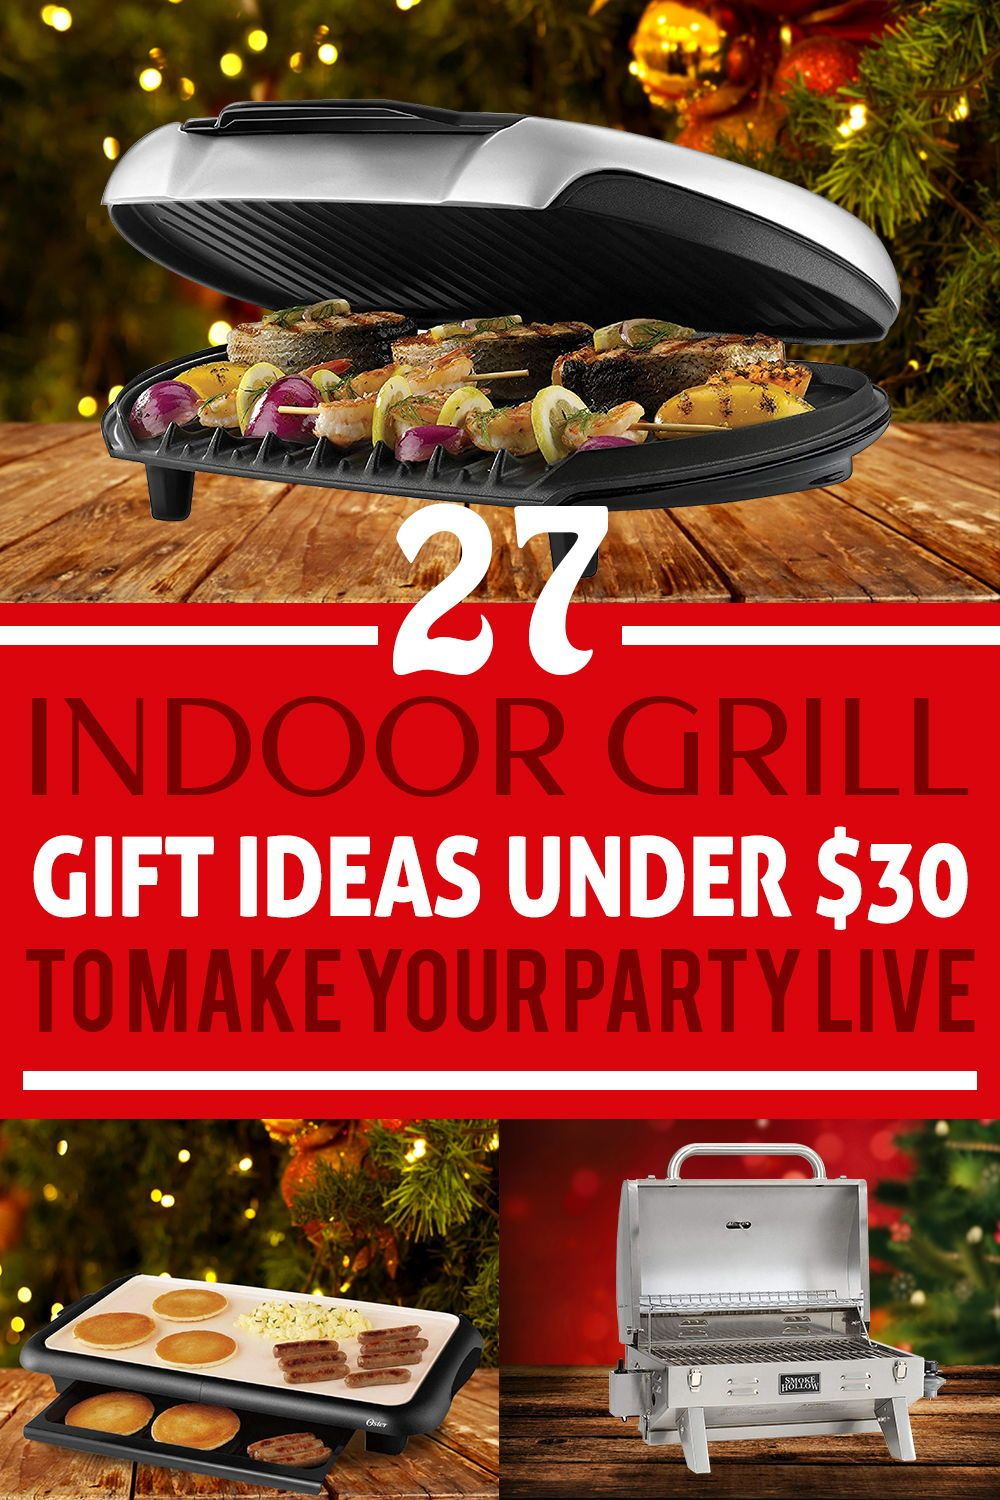 easy to clean indoor grill indoor press grill with removable plates top 10 indoor & Indoor Grill Gift Ideas Under 30$ to Make Your Party Live | Grilling ...